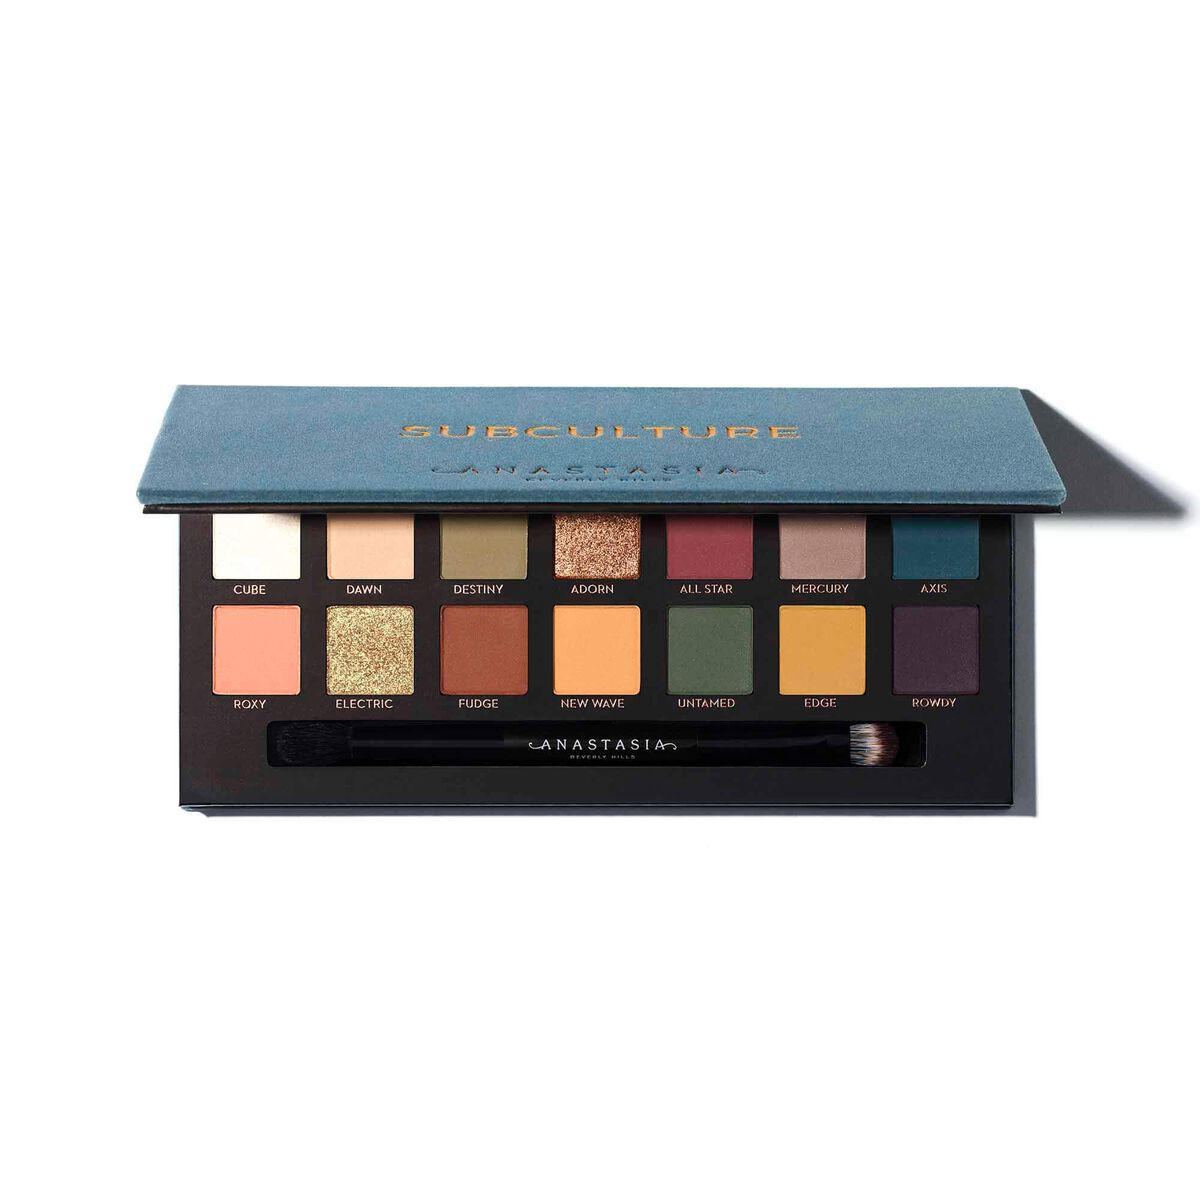 Subculture Eyeshadow Palette |...